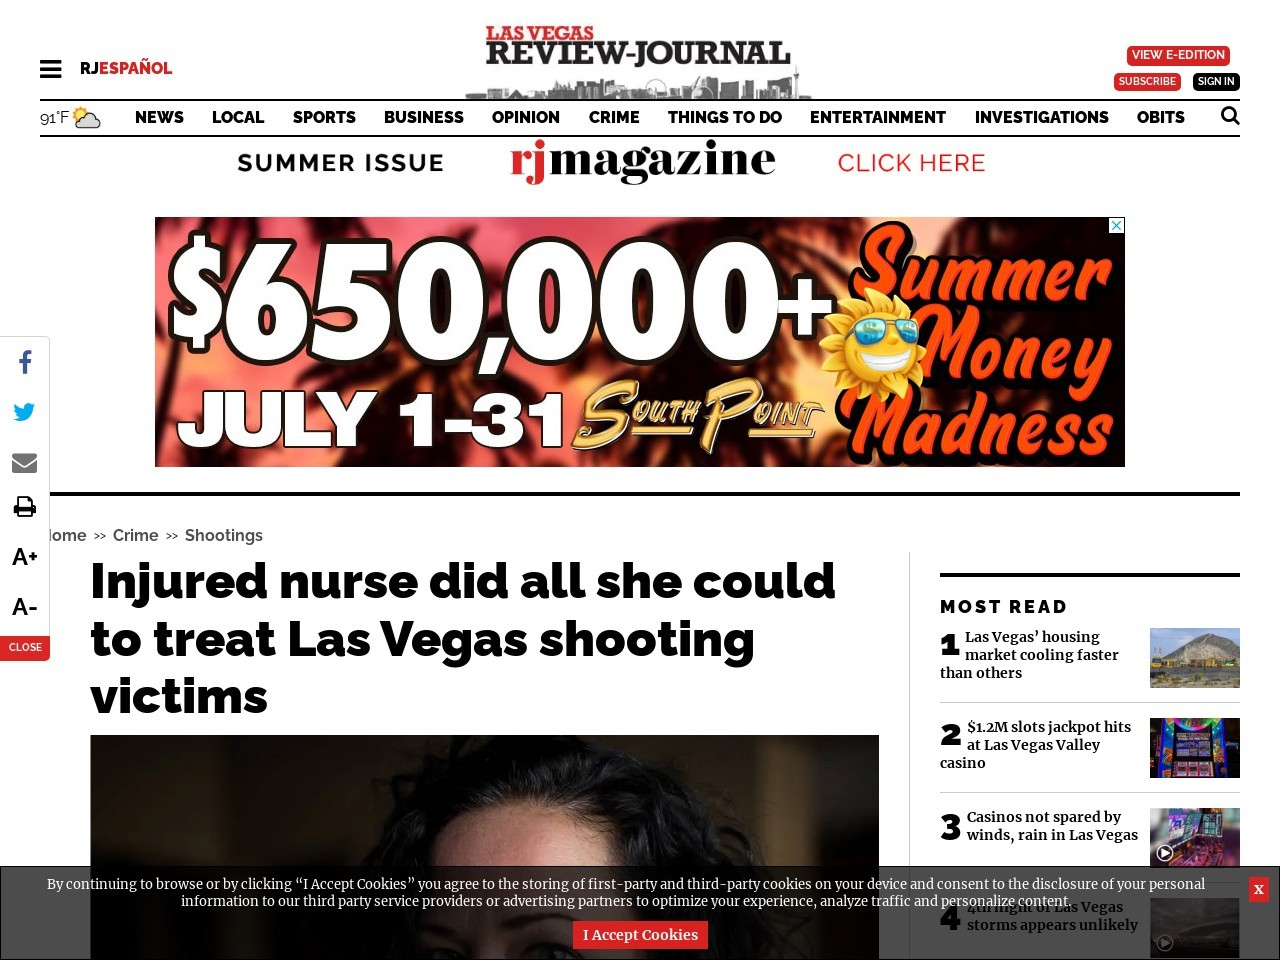 Injured nurse did all she could to treat Las Vegas shooting victims